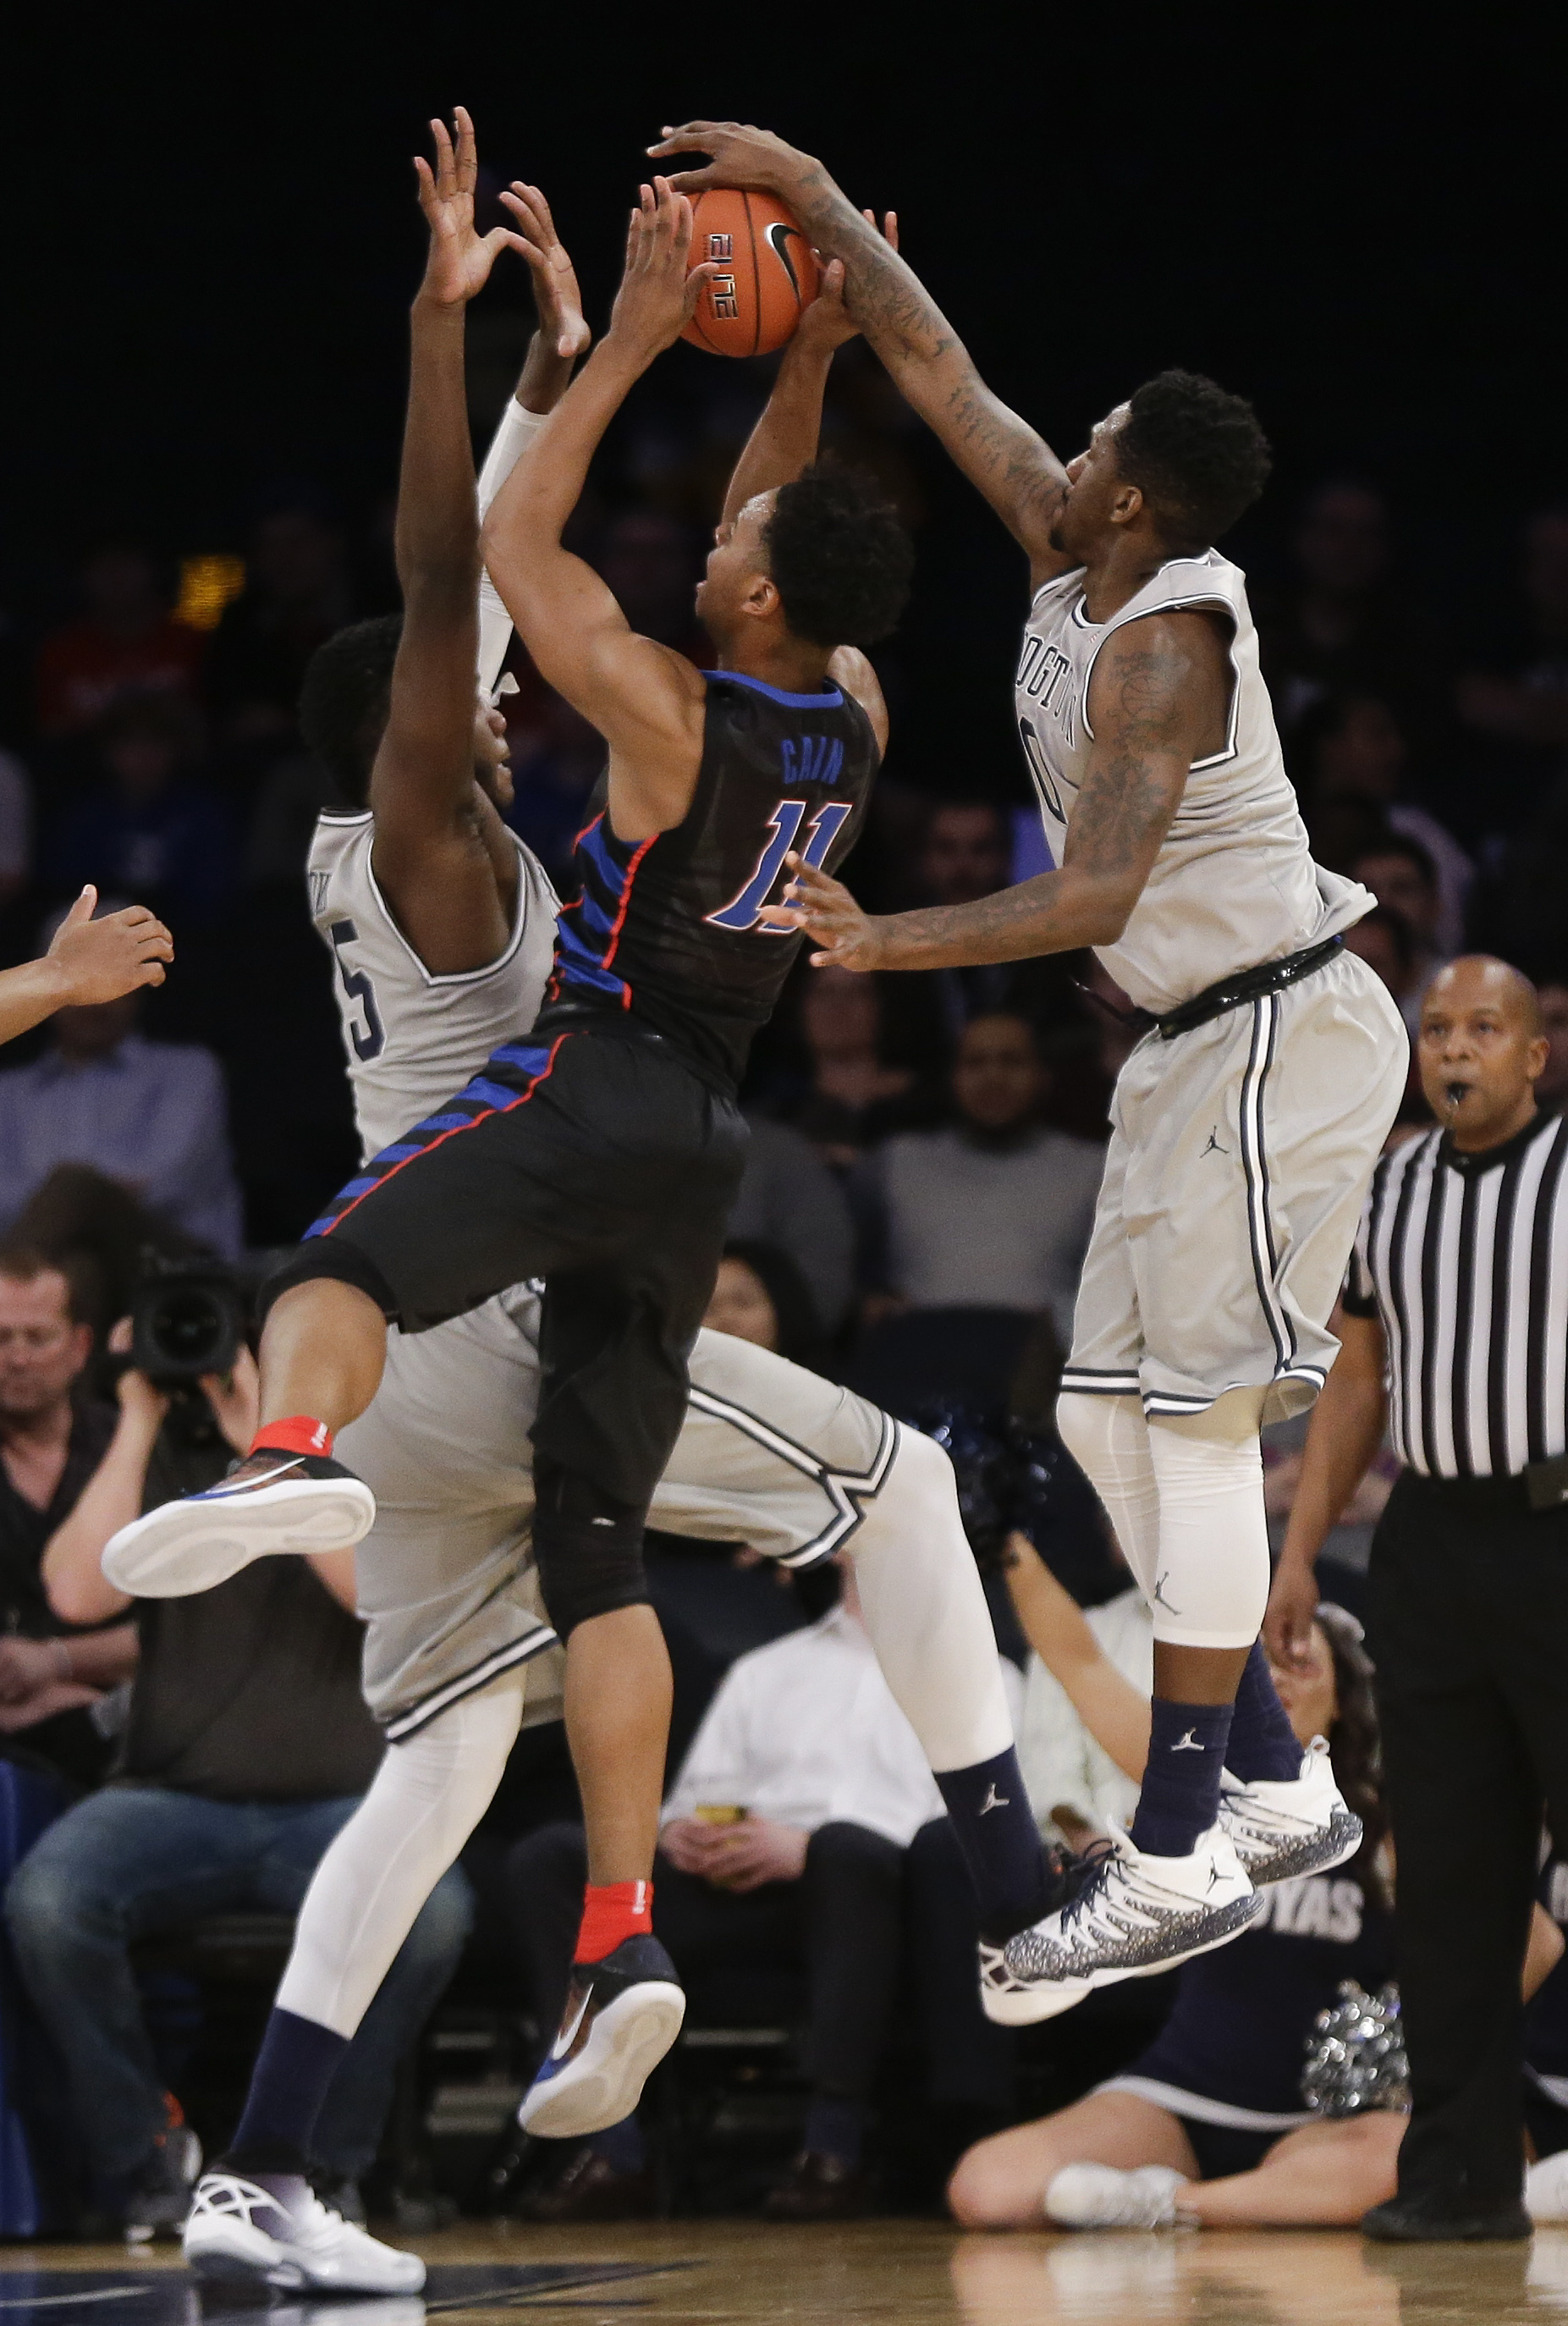 Georgetown guard L.J. Peak (0) blocks a shot by DePaul guard Eli Cain (11) as Georgetown center Jessie Govan (15) helps defend in the first half of an NCAA college basketball game during the Big East men's tournament, Wednesday, March 9, 2016, in New York